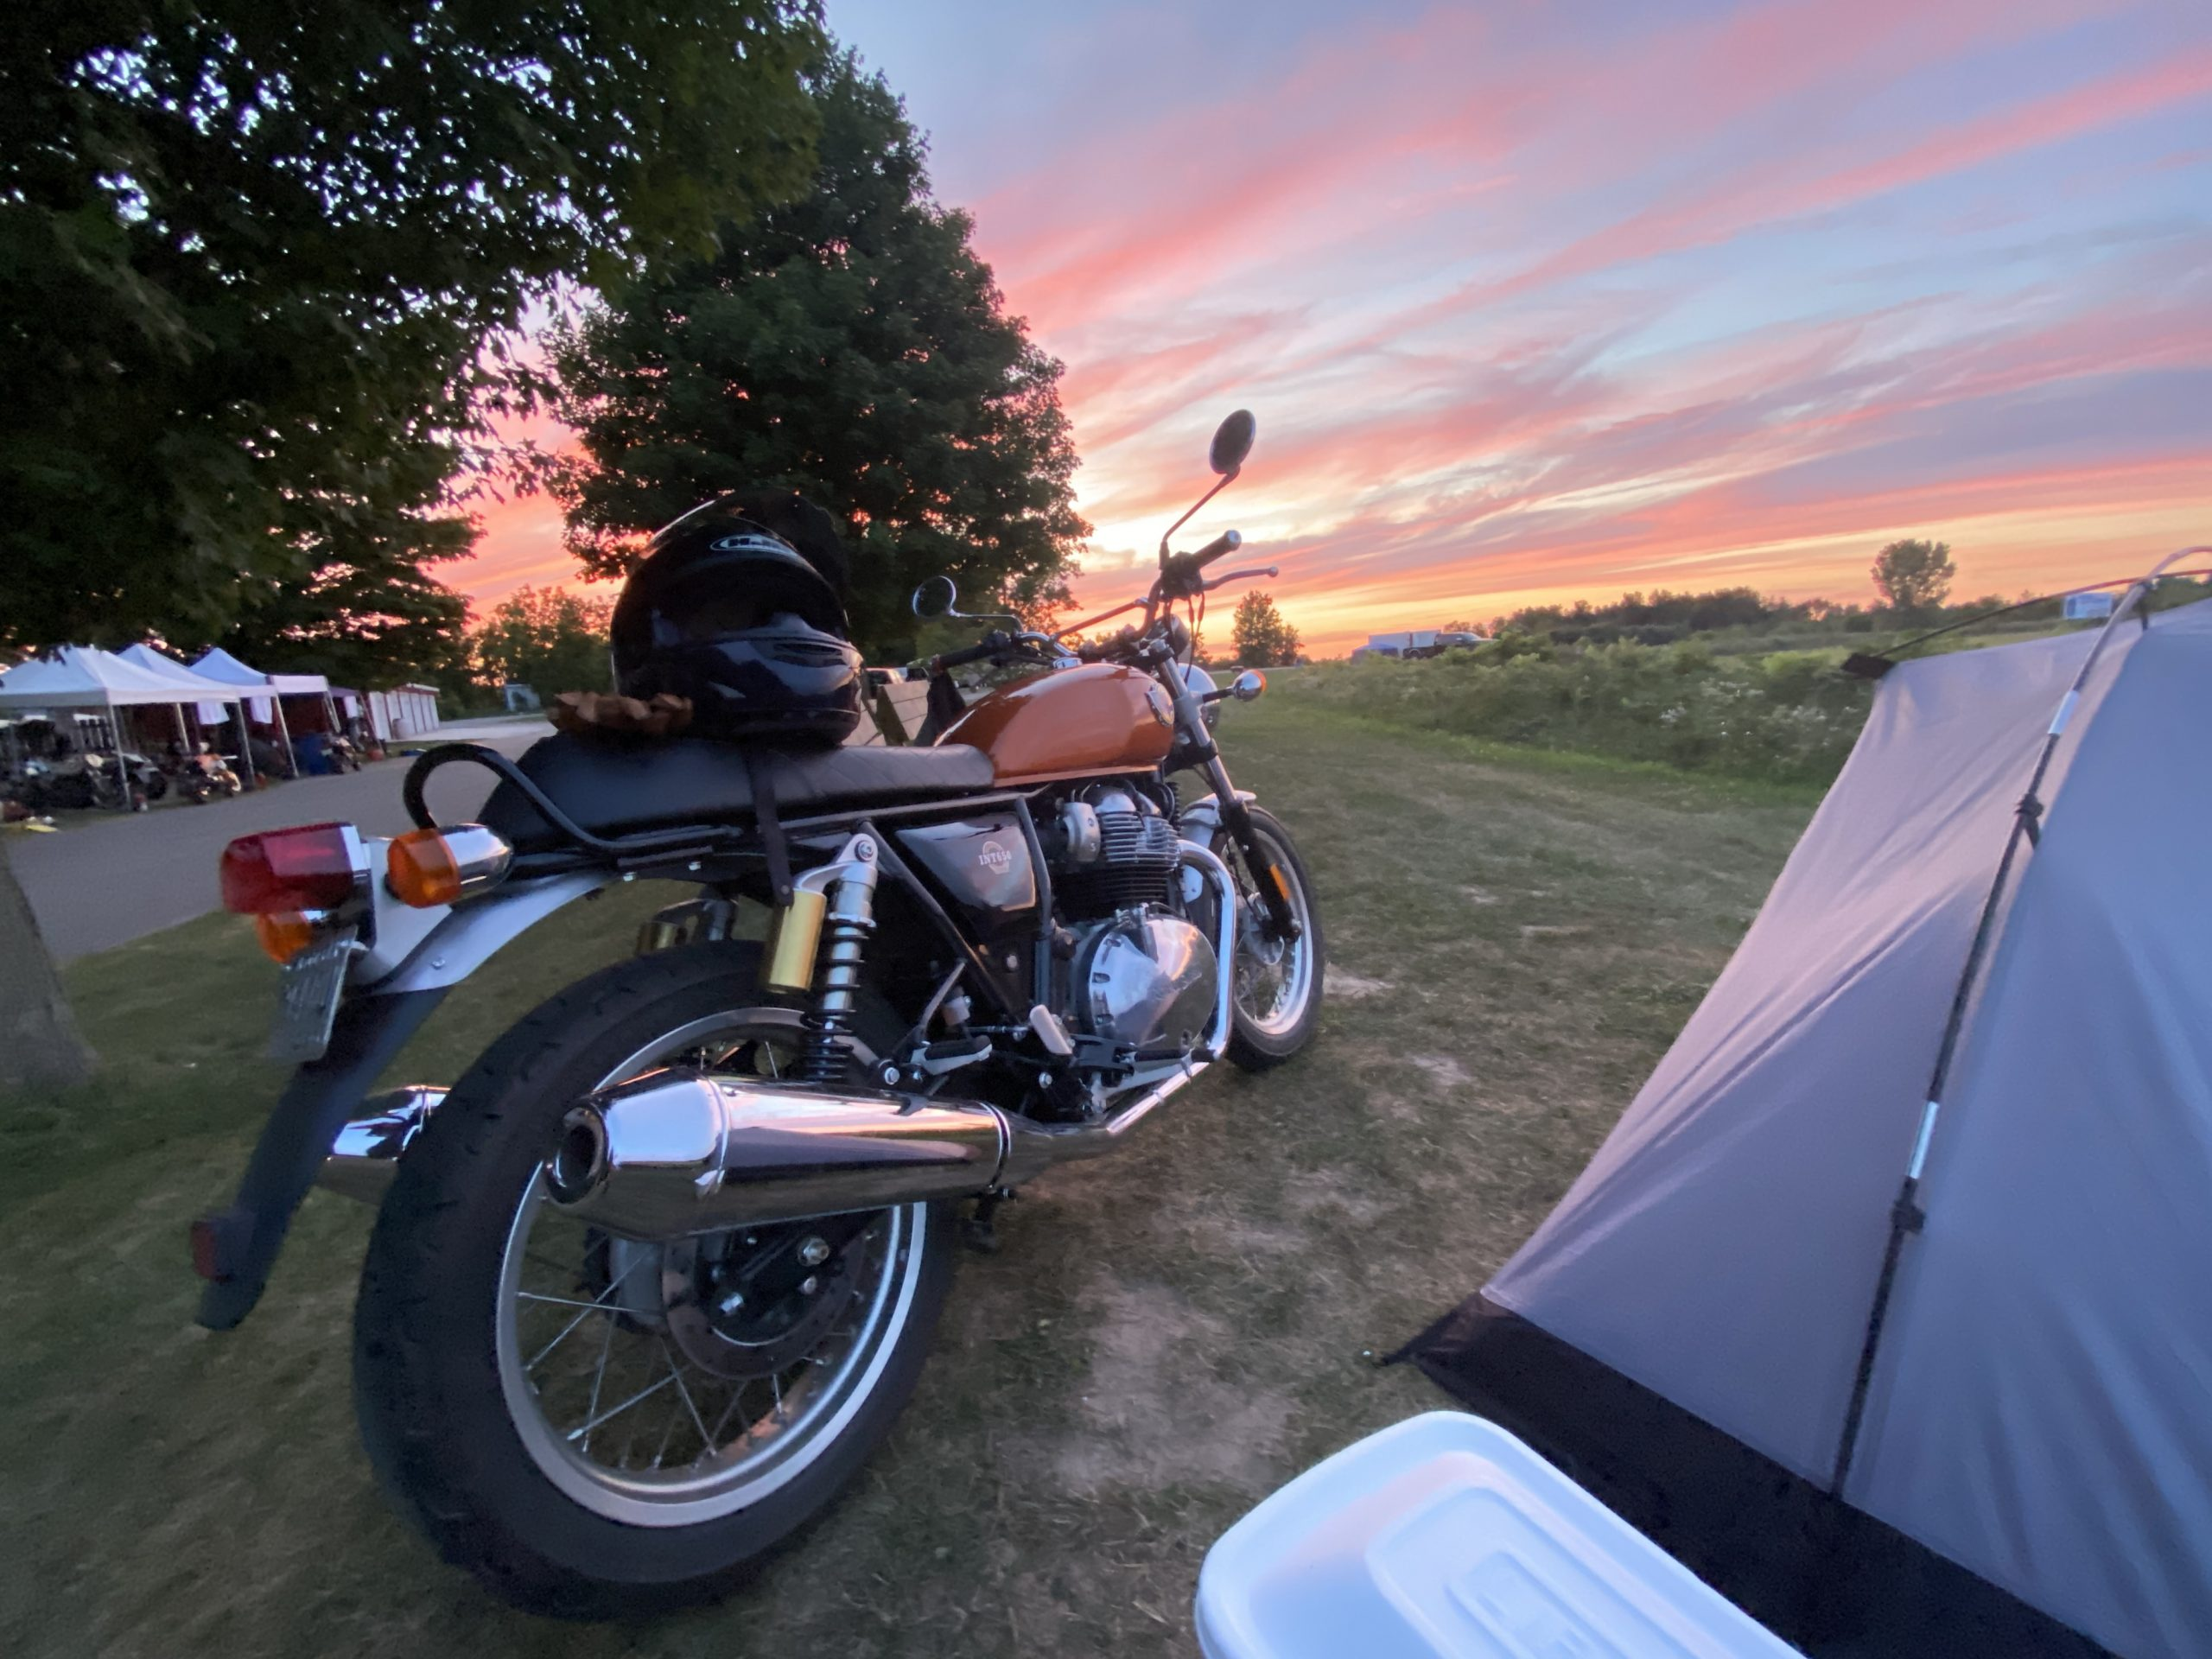 Royal Enfield INT650 at Gingerman campsite